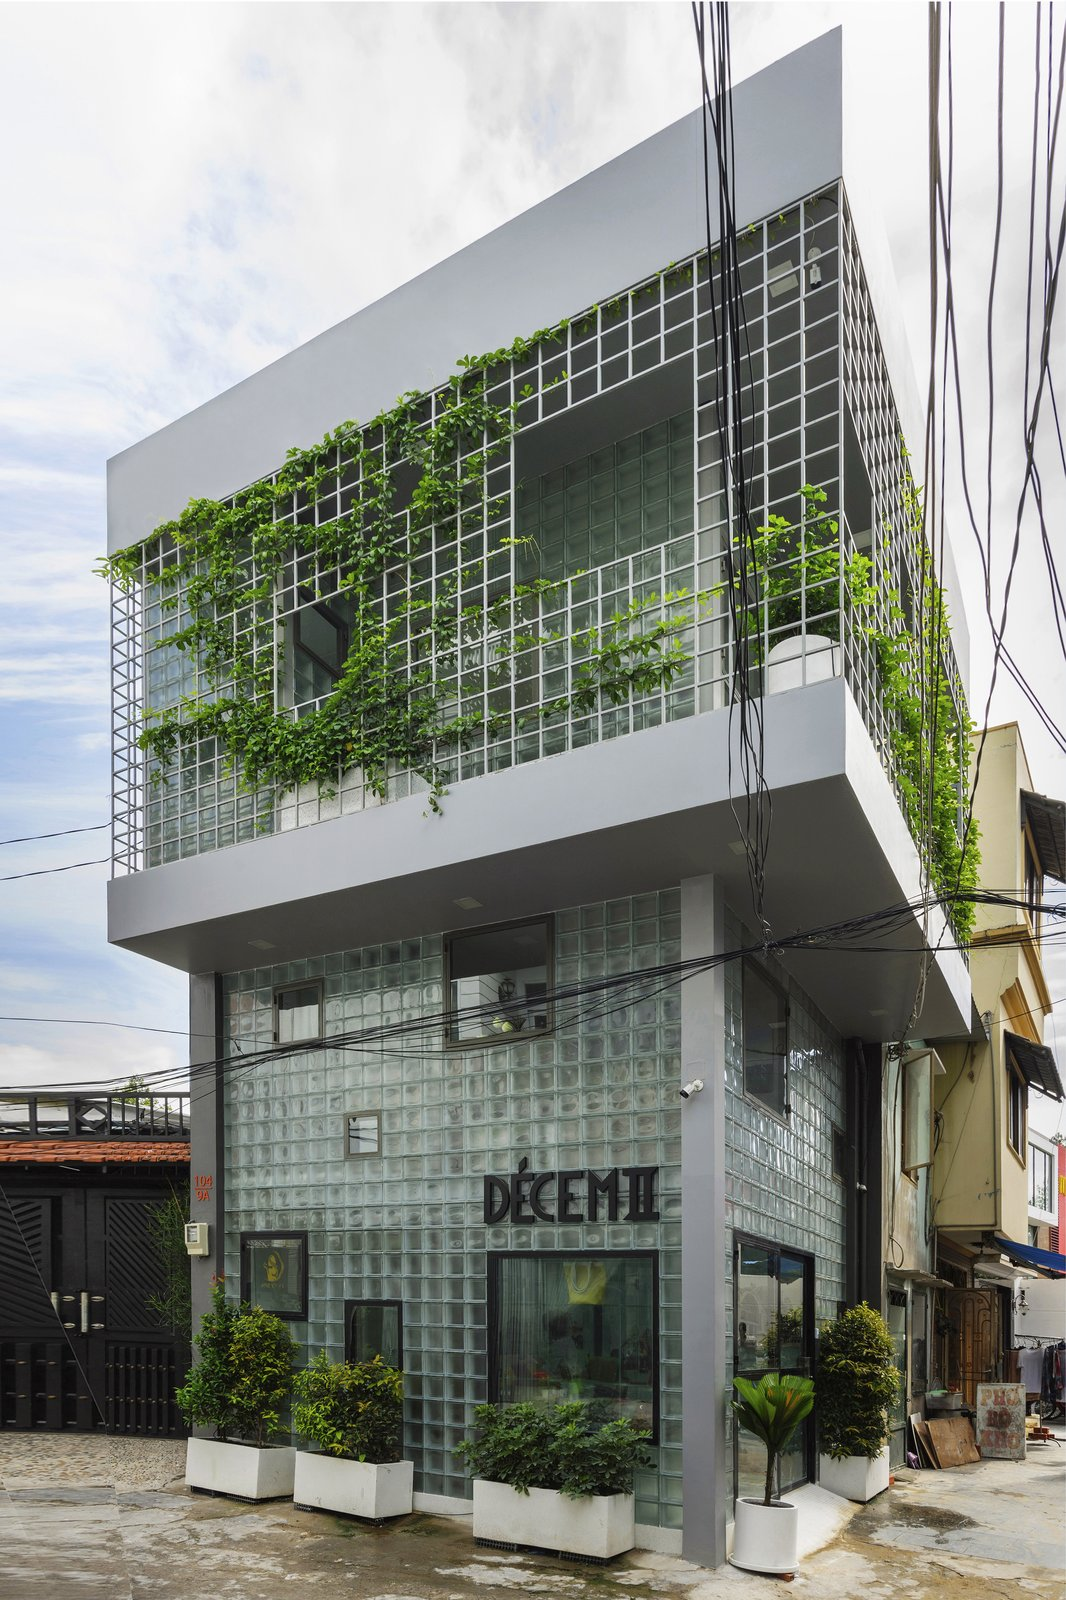 """Exterior, Flat RoofLine, and House Building Type The micro house and boutique in <span style=""""font-family: Theinhardt, -apple-system, BlinkMacSystemFont, &quot;Segoe UI&quot;, Roboto, Oxygen-Sans, Ubuntu, Cantarell, &quot;Helvetica Neue&quot;, sans-serif;"""">Ho Chi Minh City, Vietnam,</span><span style=""""font-family: Theinhardt, -apple-system, BlinkMacSystemFont, &quot;Segoe UI&quot;, Roboto, Oxygen-Sans, Ubuntu, Cantarell, &quot;Helvetica Neue&quot;, sans-serif;""""> designed by ROOM+ Design &amp; Build features glass-block siding.</span>  Photo 2 of 12 in This Vietnamese Micro Home Is as Practical as It Is Radiant"""